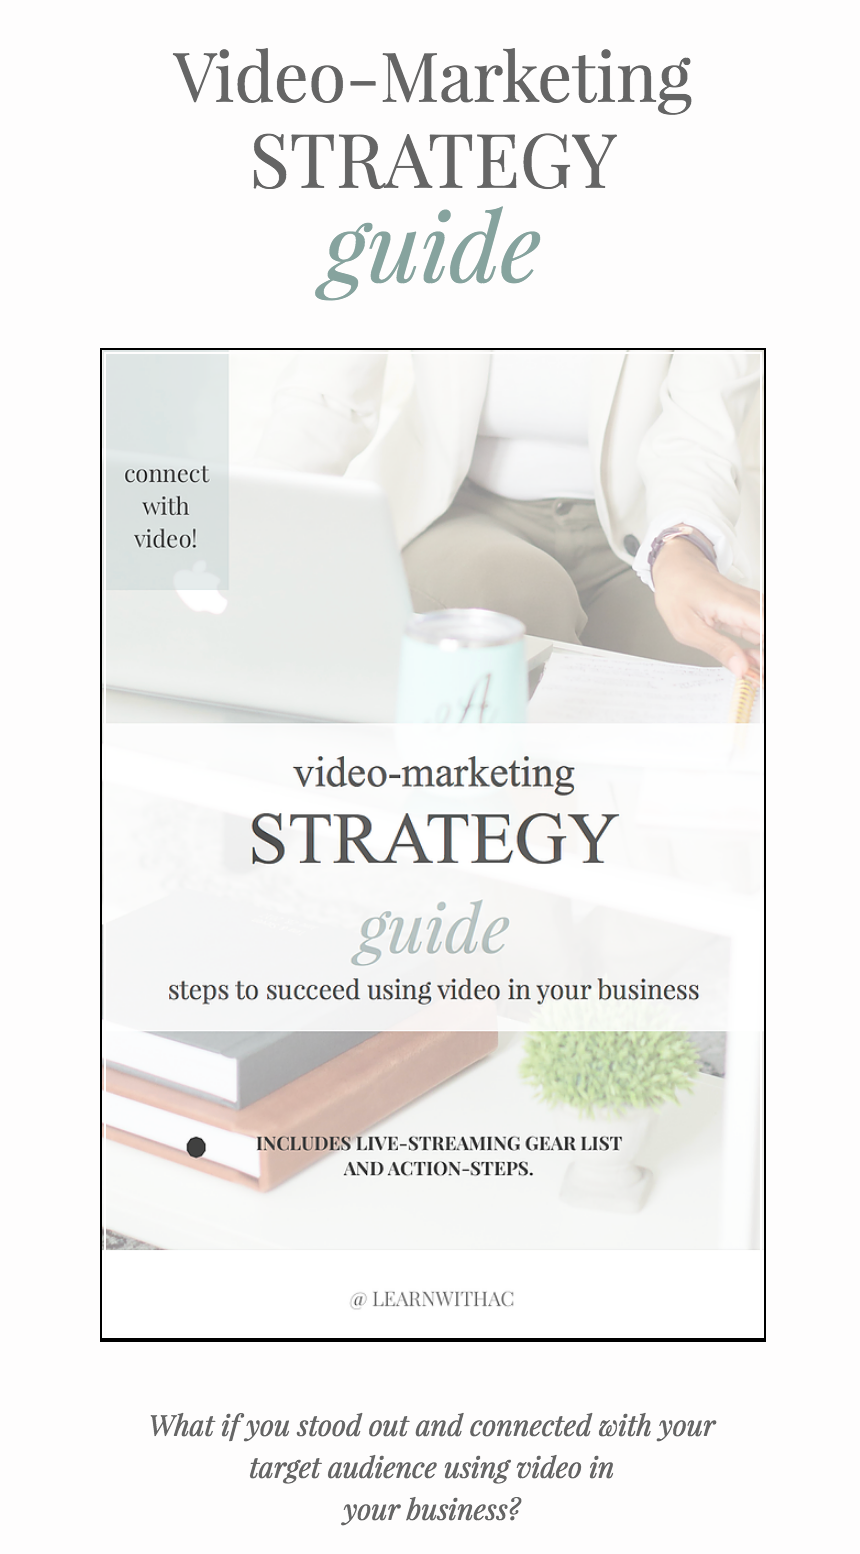 get started with video-marketing in your business, download my Video-Marketing Strategy Guide